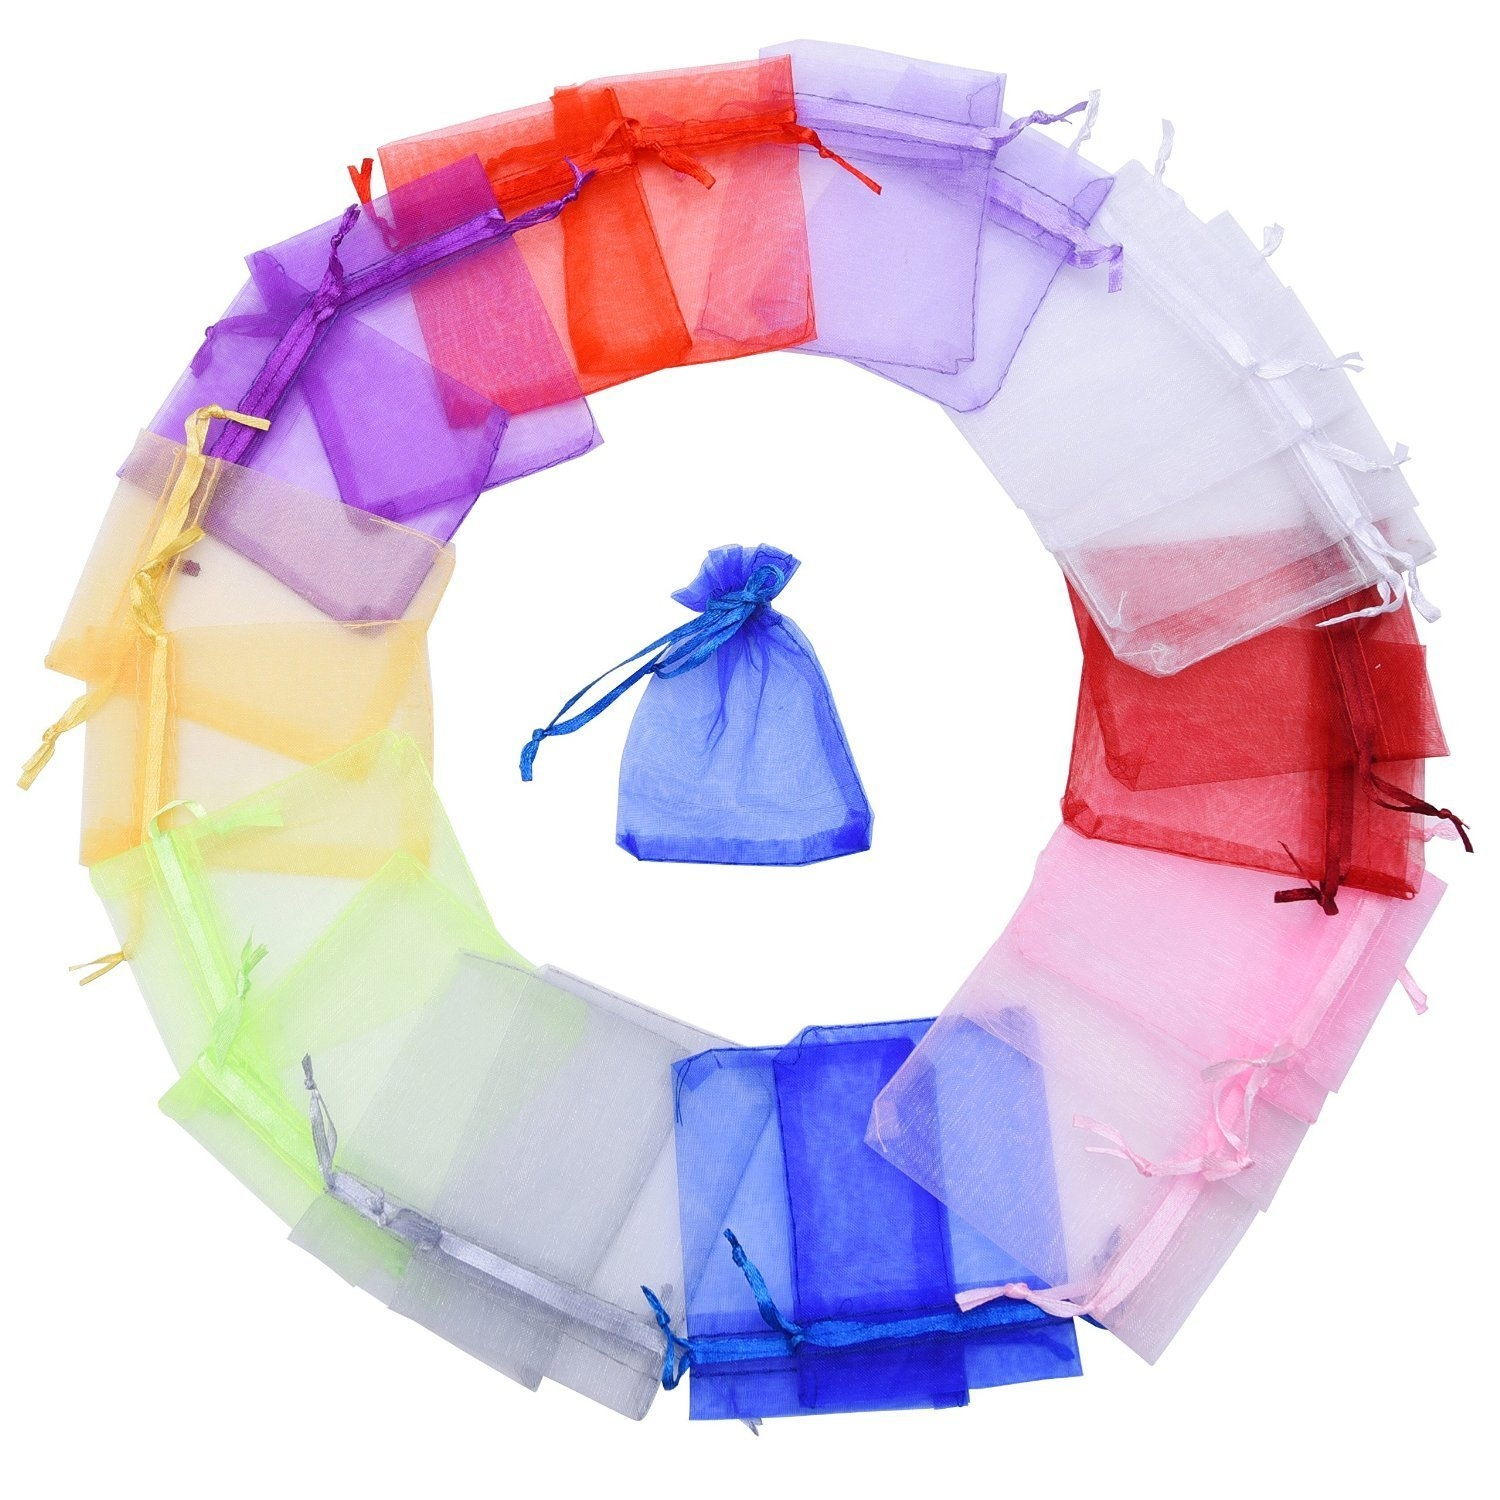 d953cc1fadb Mudder 100 Pieces Multi Colored Organza Gift Bags Wedding Favor Bags  Jewelry Pouches